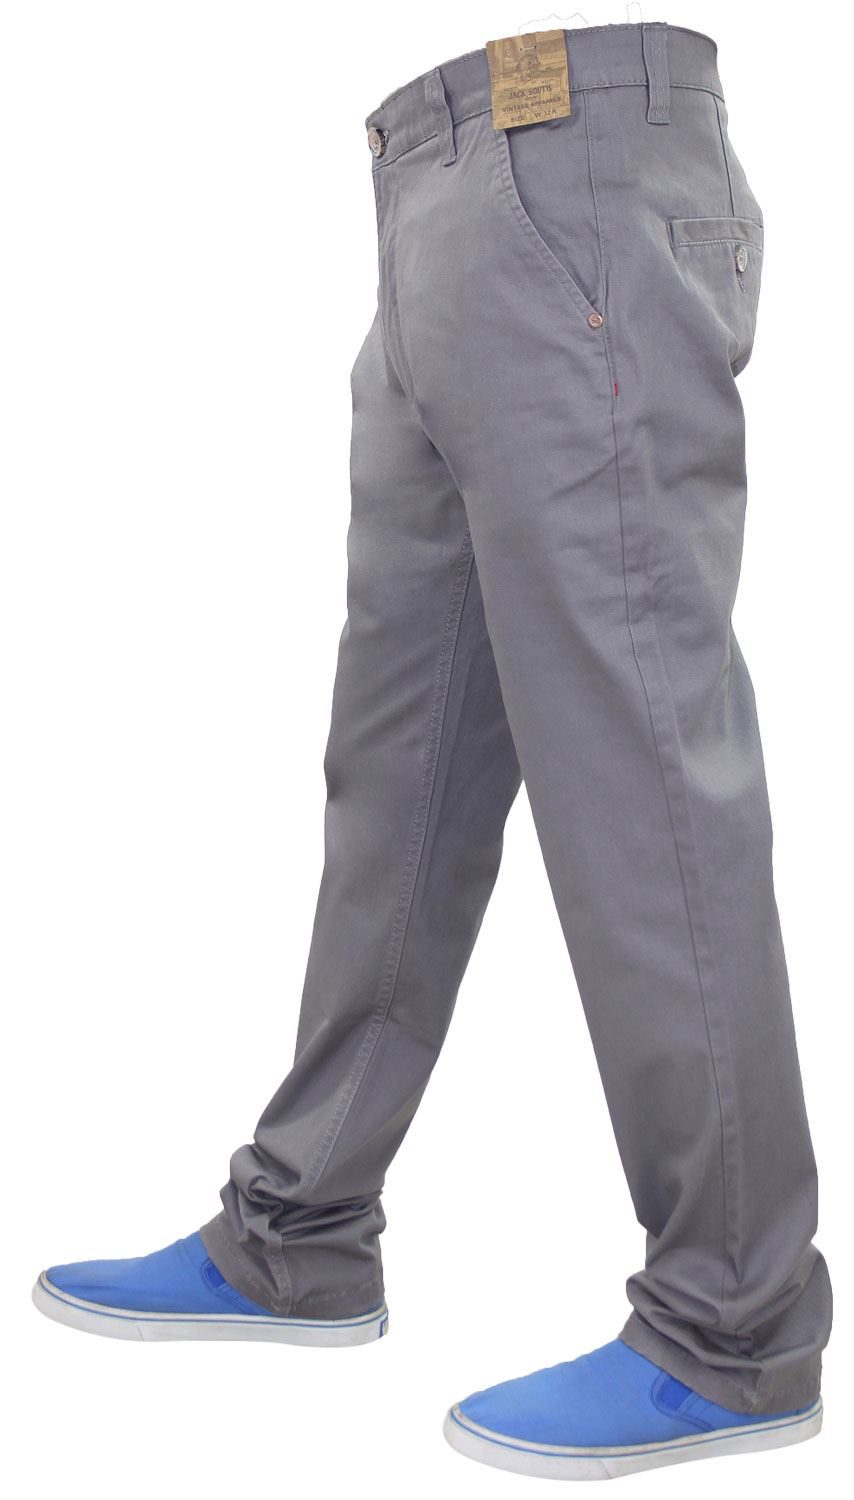 Jacksouth-Mens-Chinos-Trousers-Regular-Fit-Stretch-Cotton-Rich-Twill-Jeans-Pants thumbnail 9